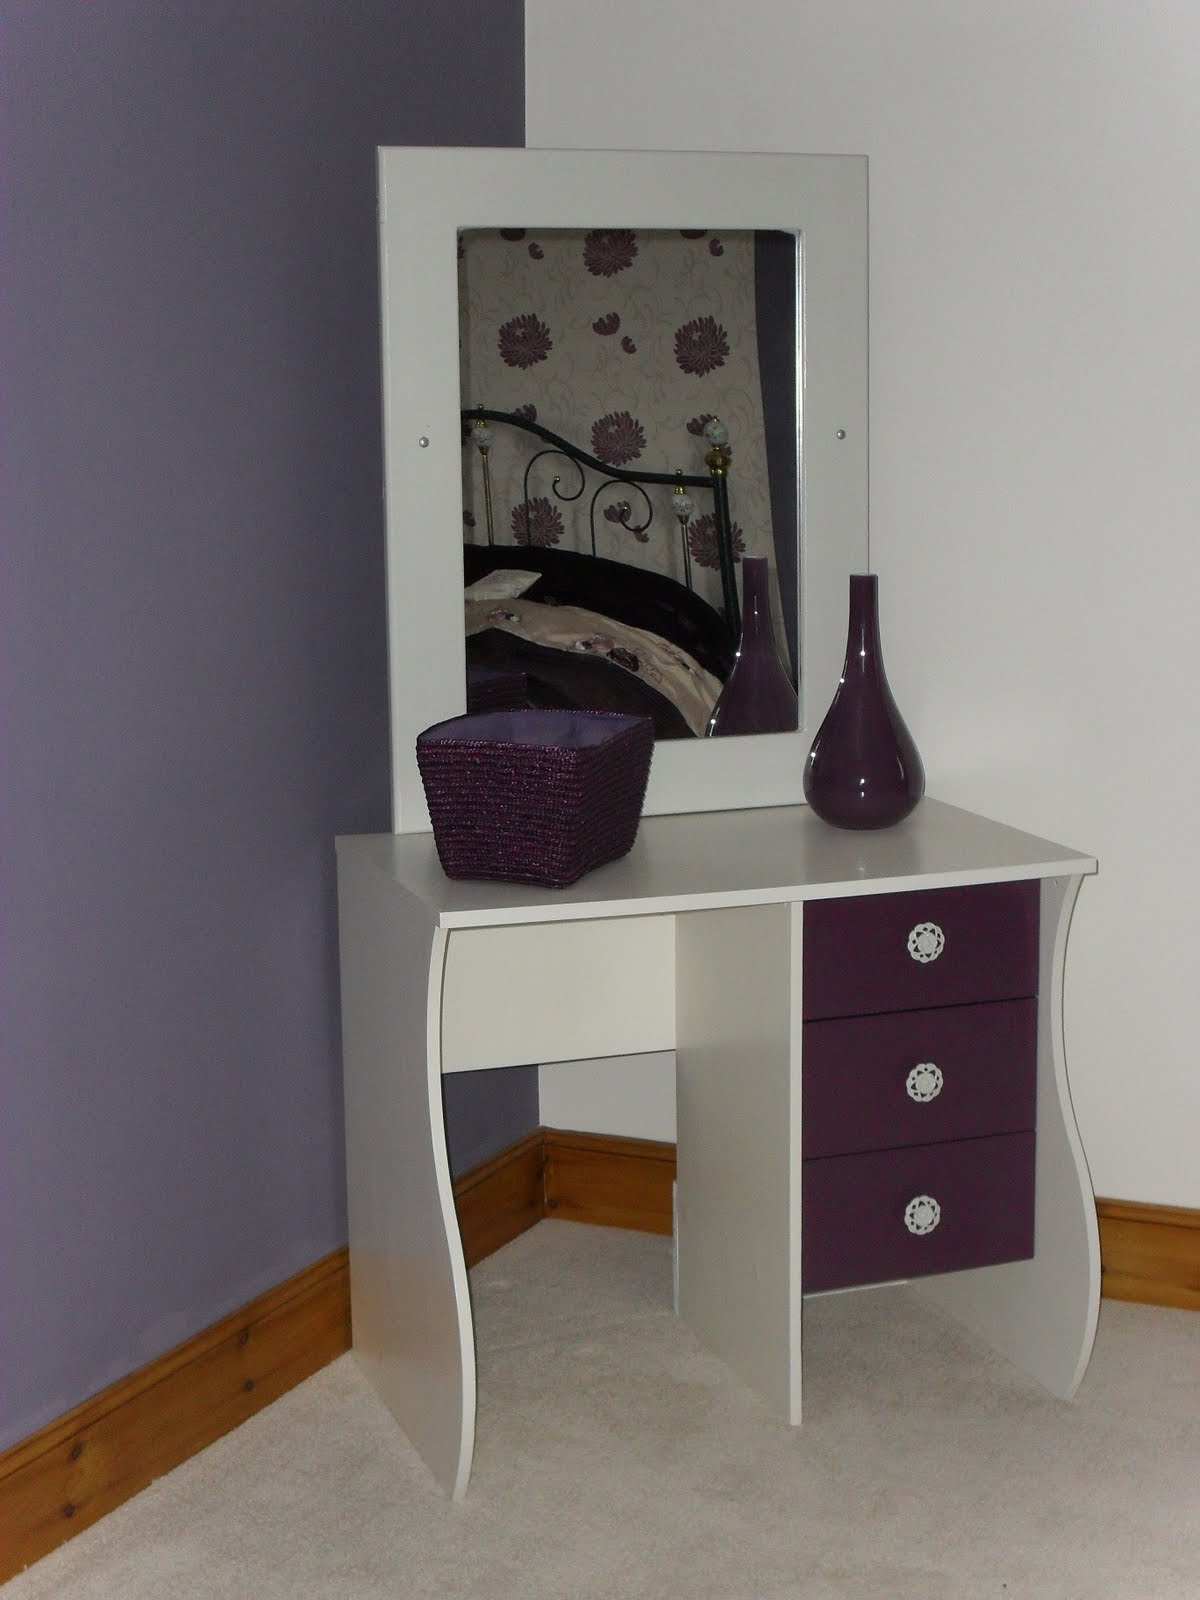 vanity table no mirror. And I love it  despite looking a bit like dolls house furniture Coach House Crafting on budget Furniture makeover Computer